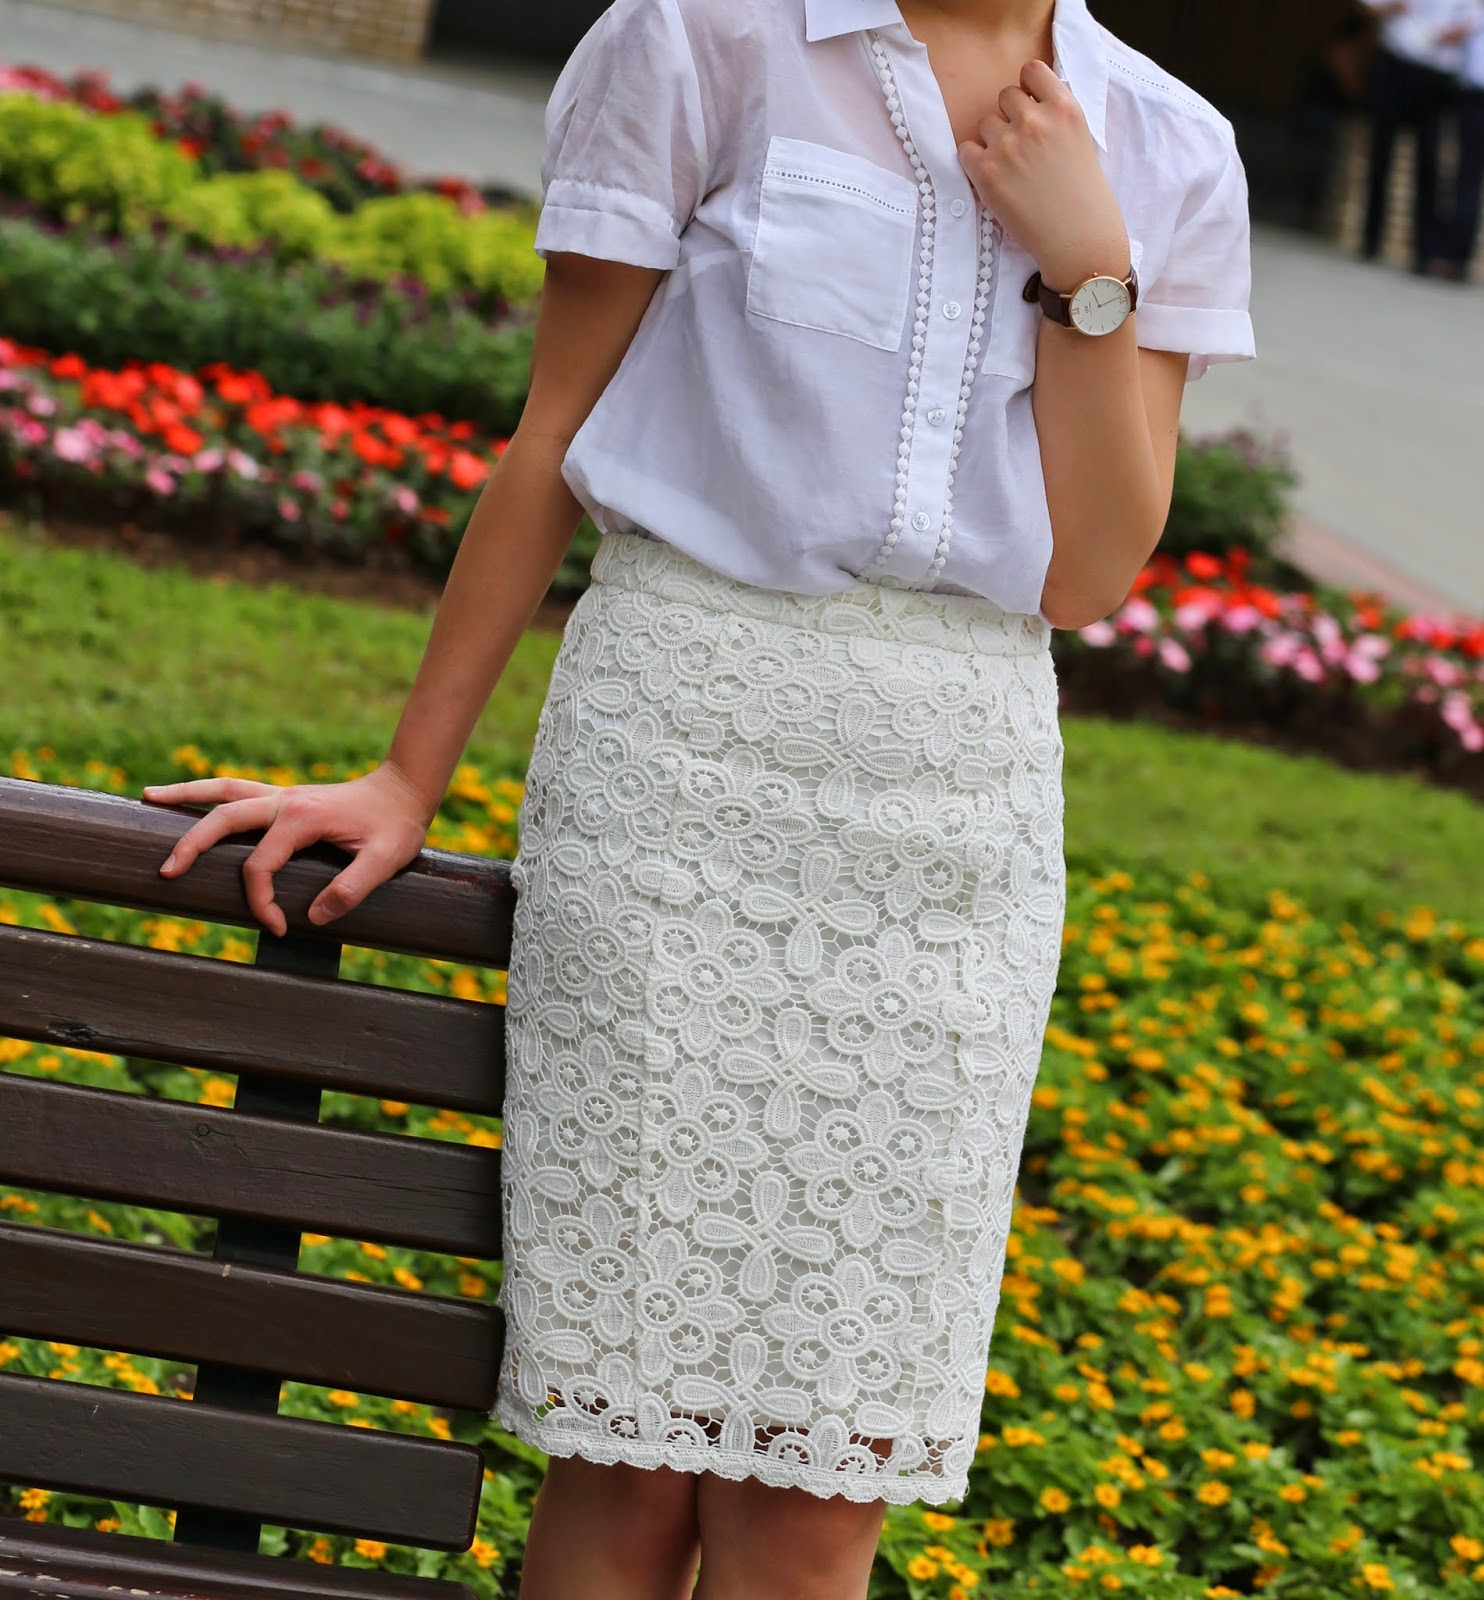 hk fashion blog, corporate fashion blog, what to wear to work, business casual, finance fashion blog, that working life, white lace pencil skirt, white eyelet top, hong kong fashion blogger, corporate style, corporate chic, ann taylor white button up, intermix pencil skirt